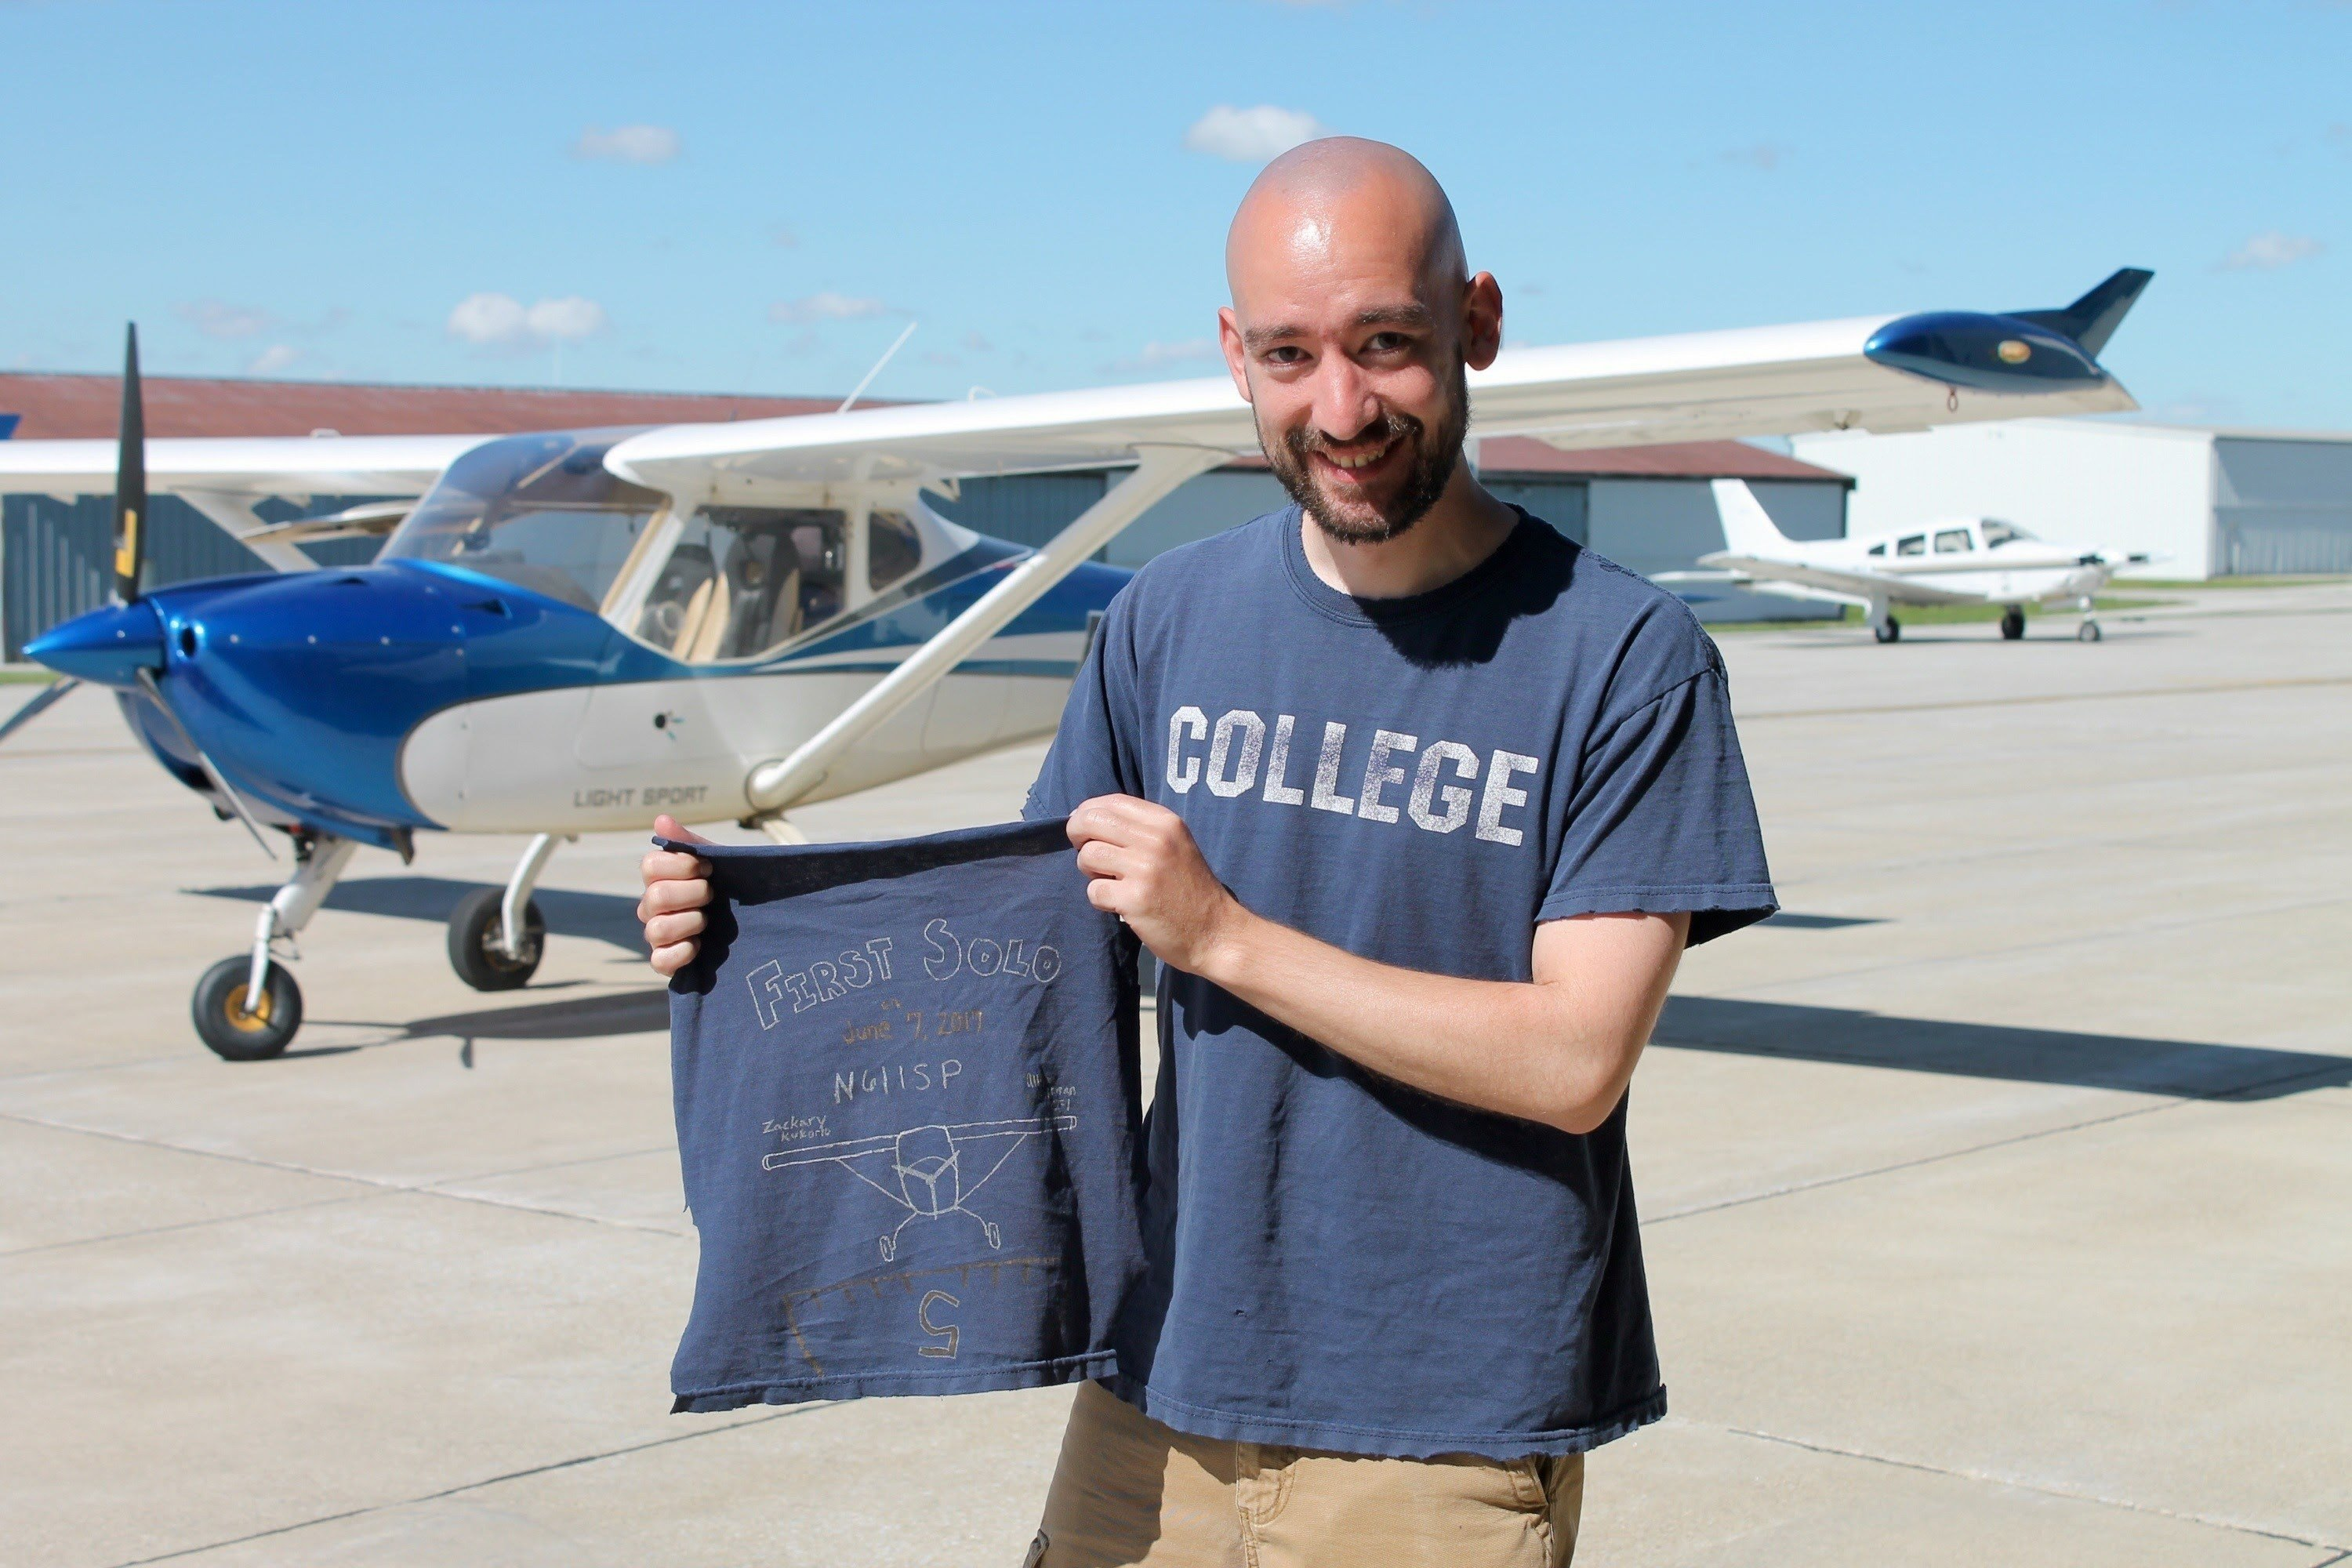 """Following tradition, Kukorlo cut his """"tail"""" (the back of his shirt) for his first solo flight."""